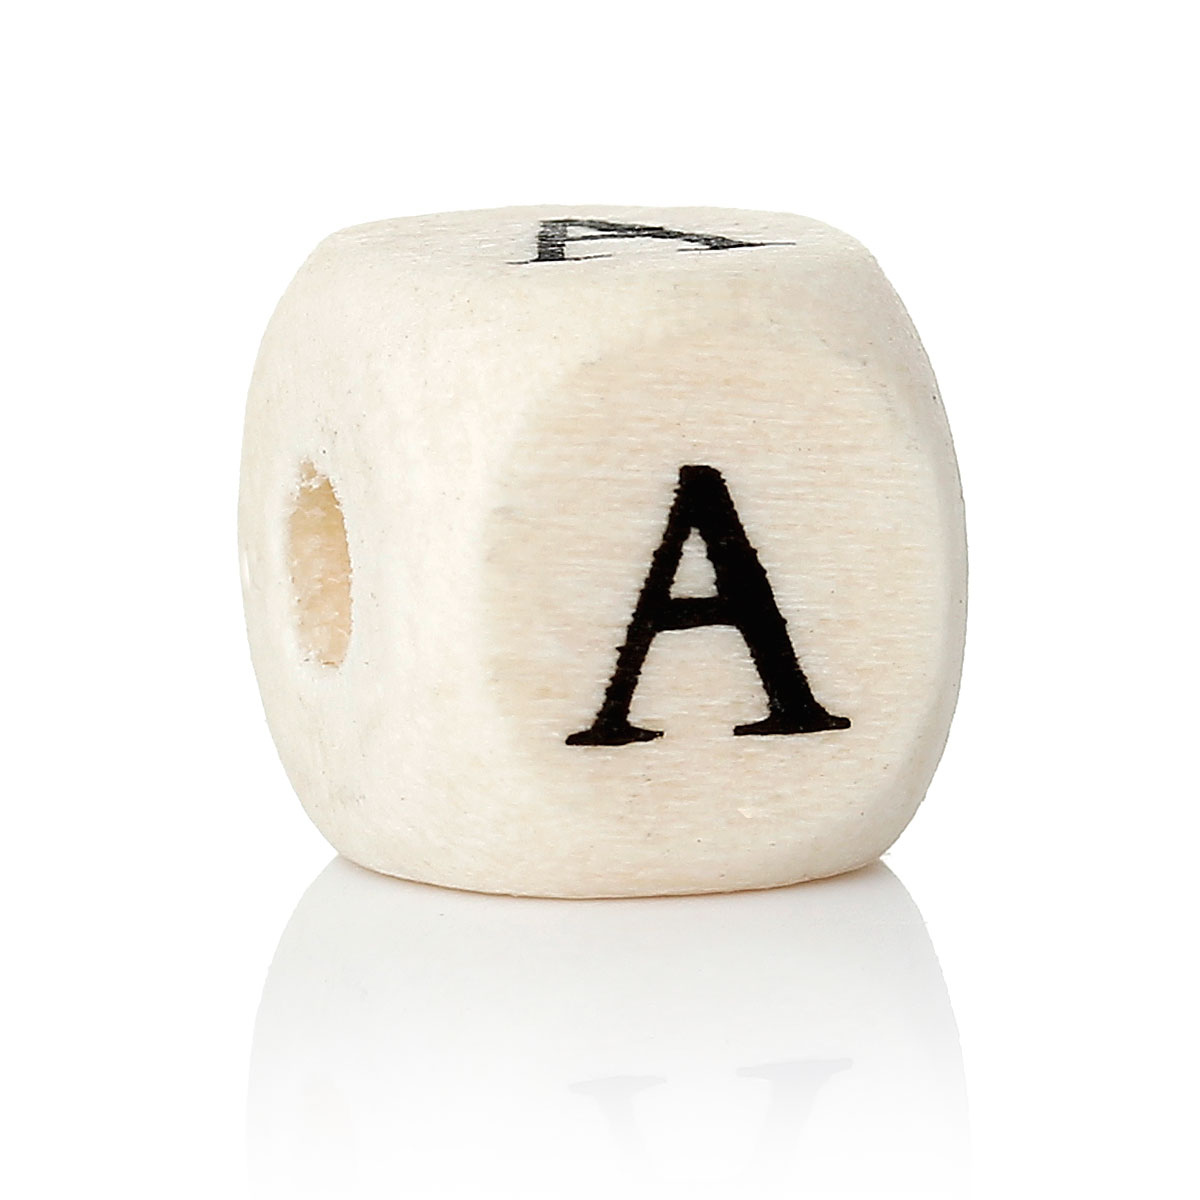 "DoreenBeads Wood Spacer Beads Cube Natural Letter Pattern About 10.0mm( 3/8"") x 10.0mm( 3/8""), Hole: Approx 4.0mm, 30 PCs"